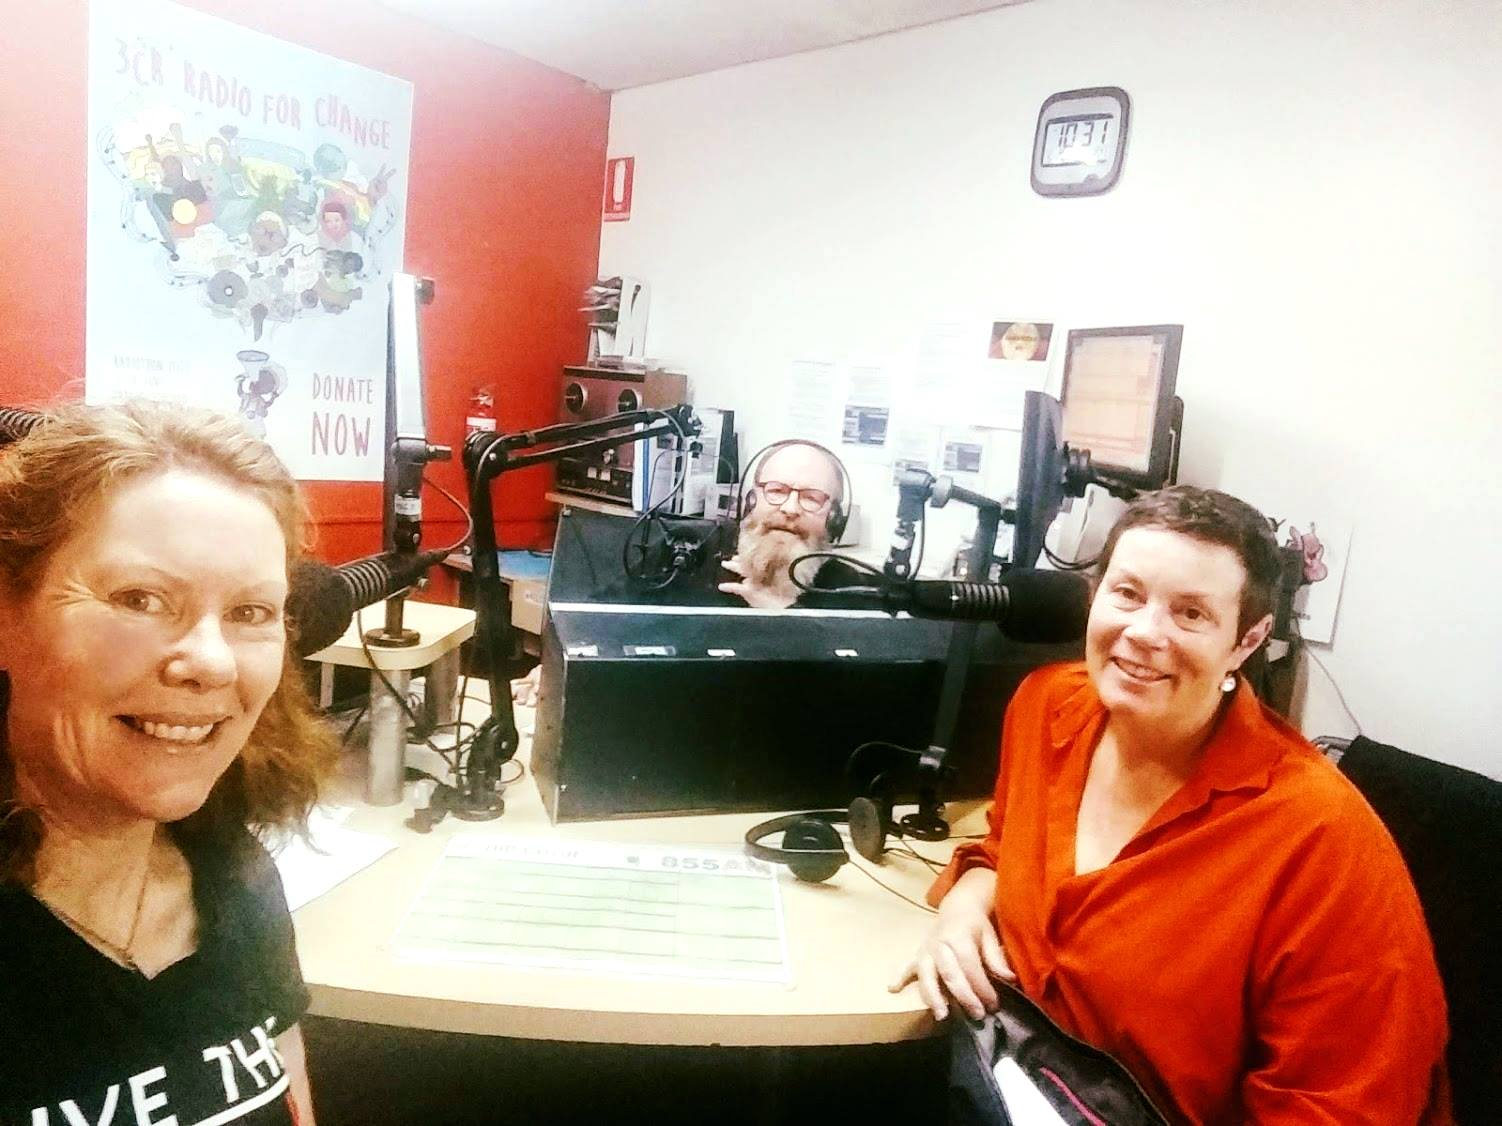 YarraBUG Radio Show - Listen to the YarraBUG Radio Show #494 from 10 am on Monday, 28 May featuring Gayle talking to Faith  and Val about WeCycle!Link to listen here.Enjoy!